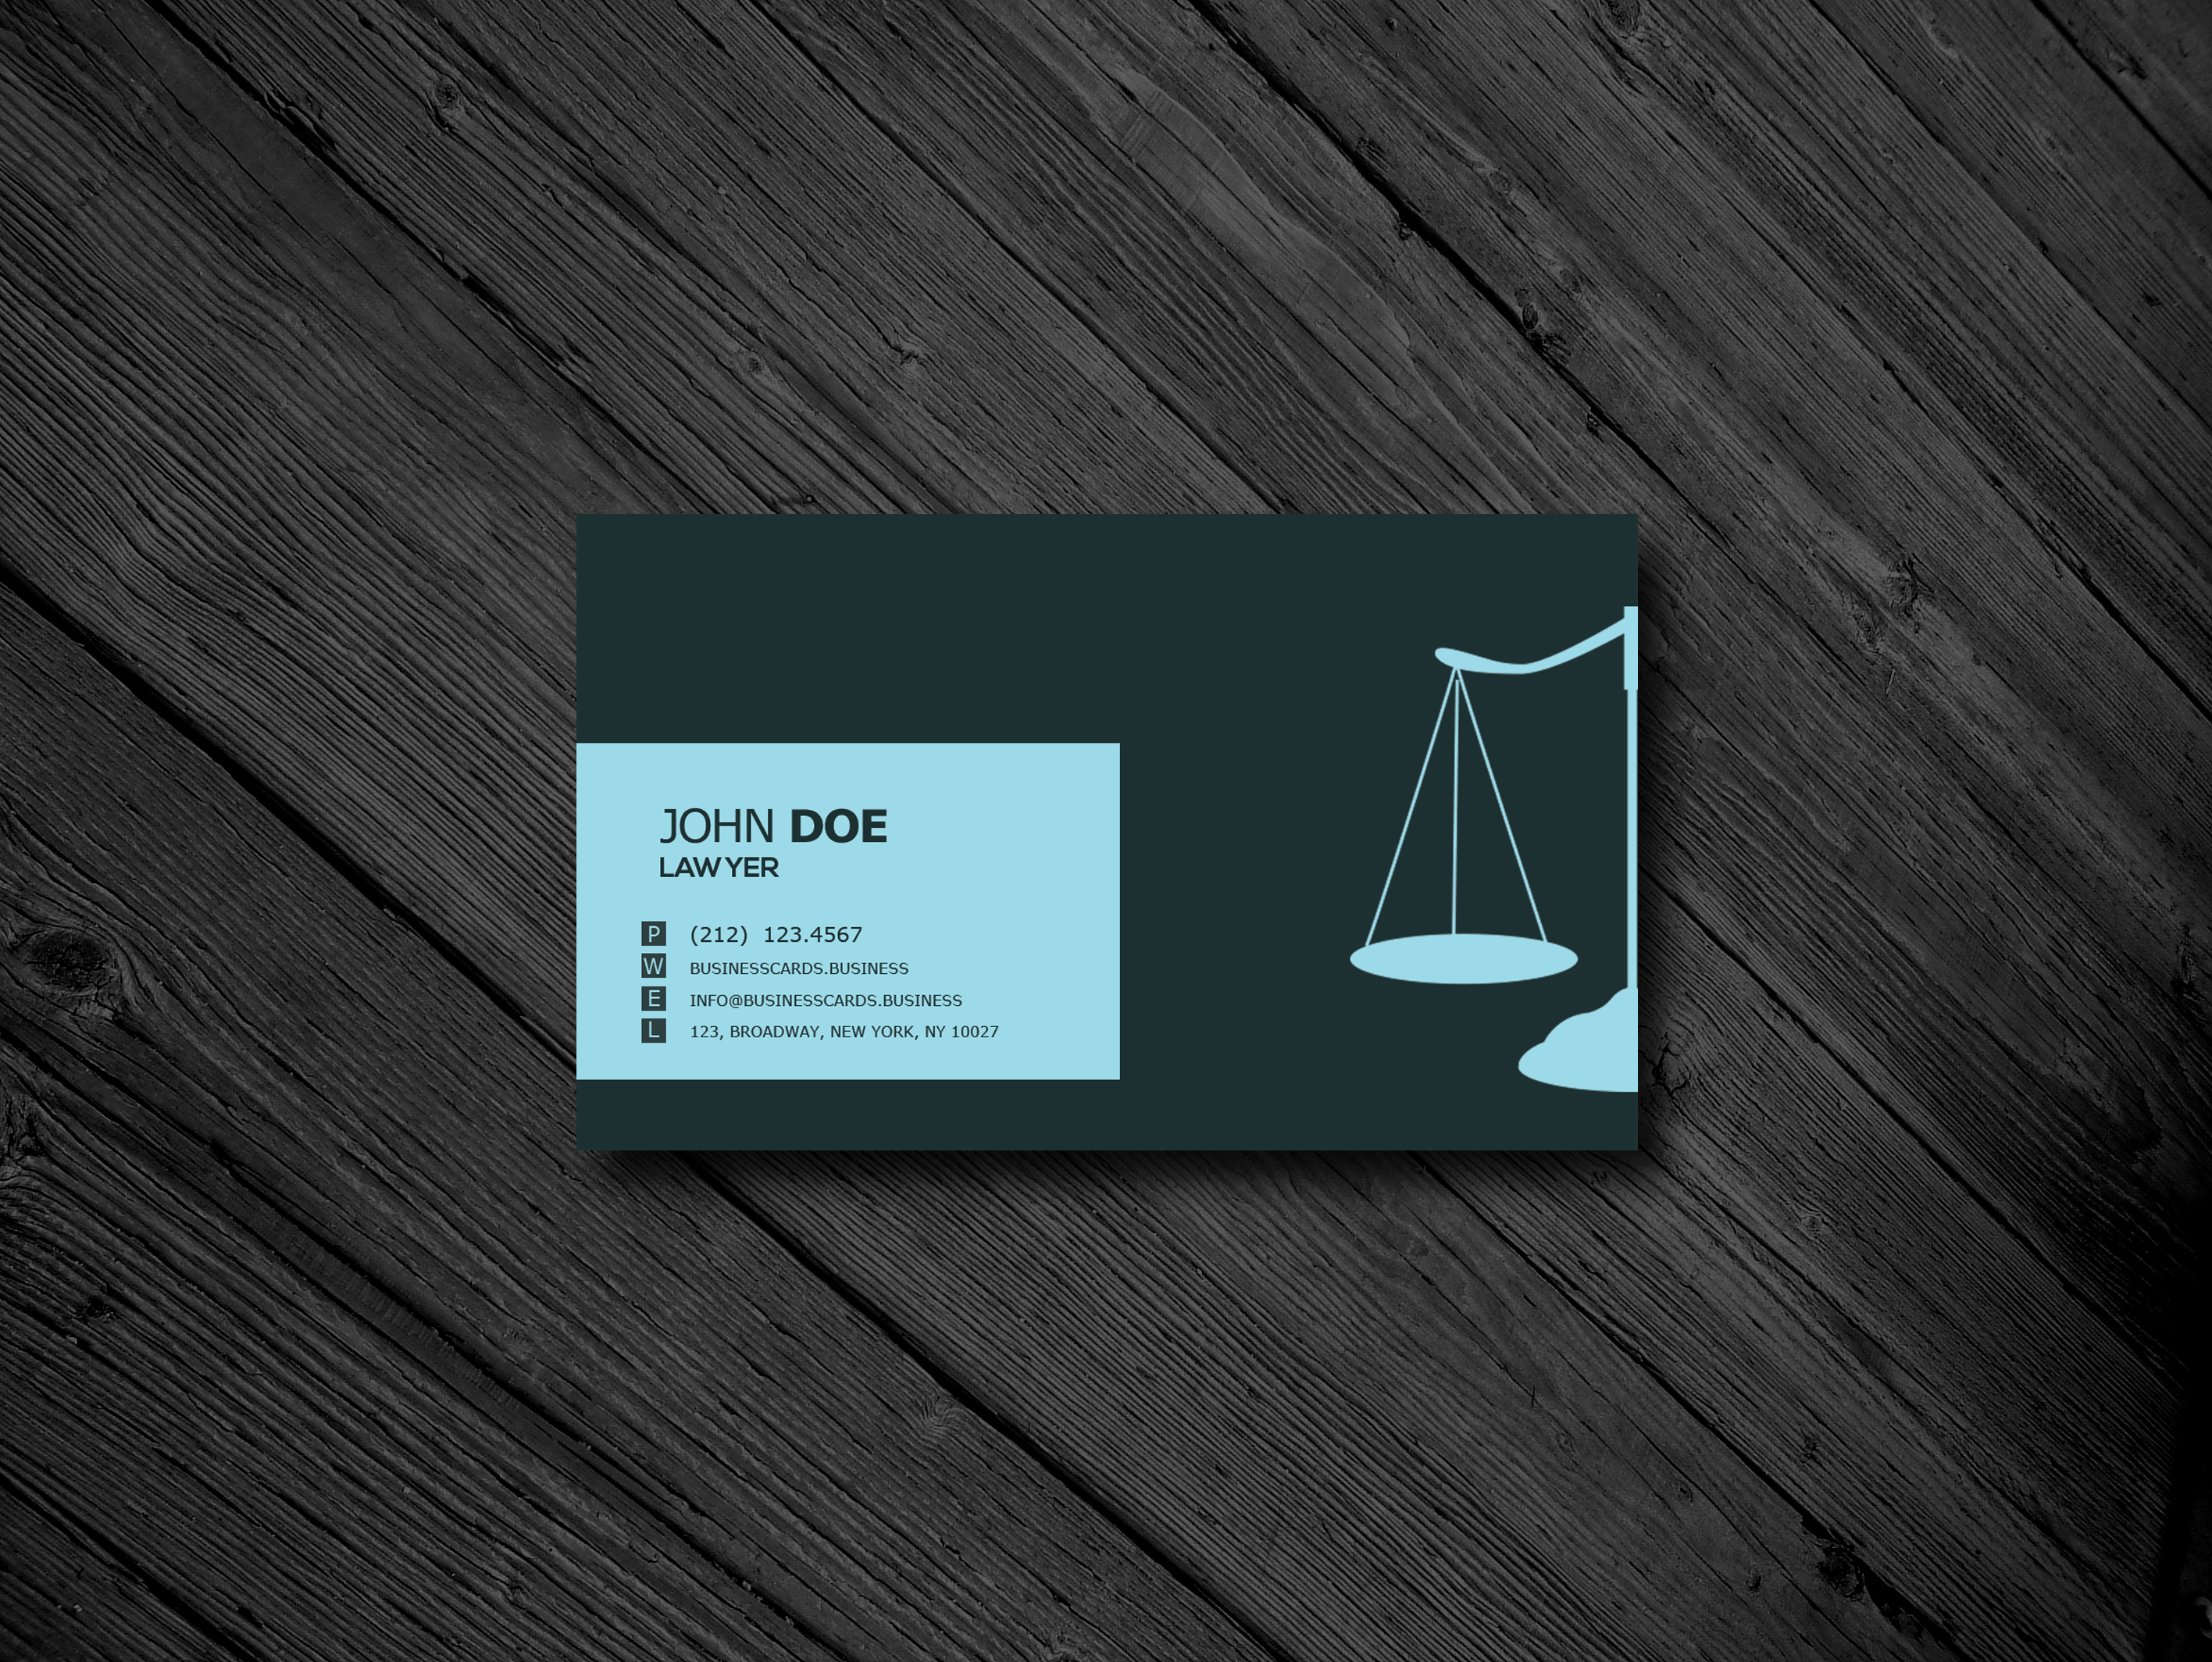 Free business card templates business cards templates free lawyer business card psd template friedricerecipe Choice Image